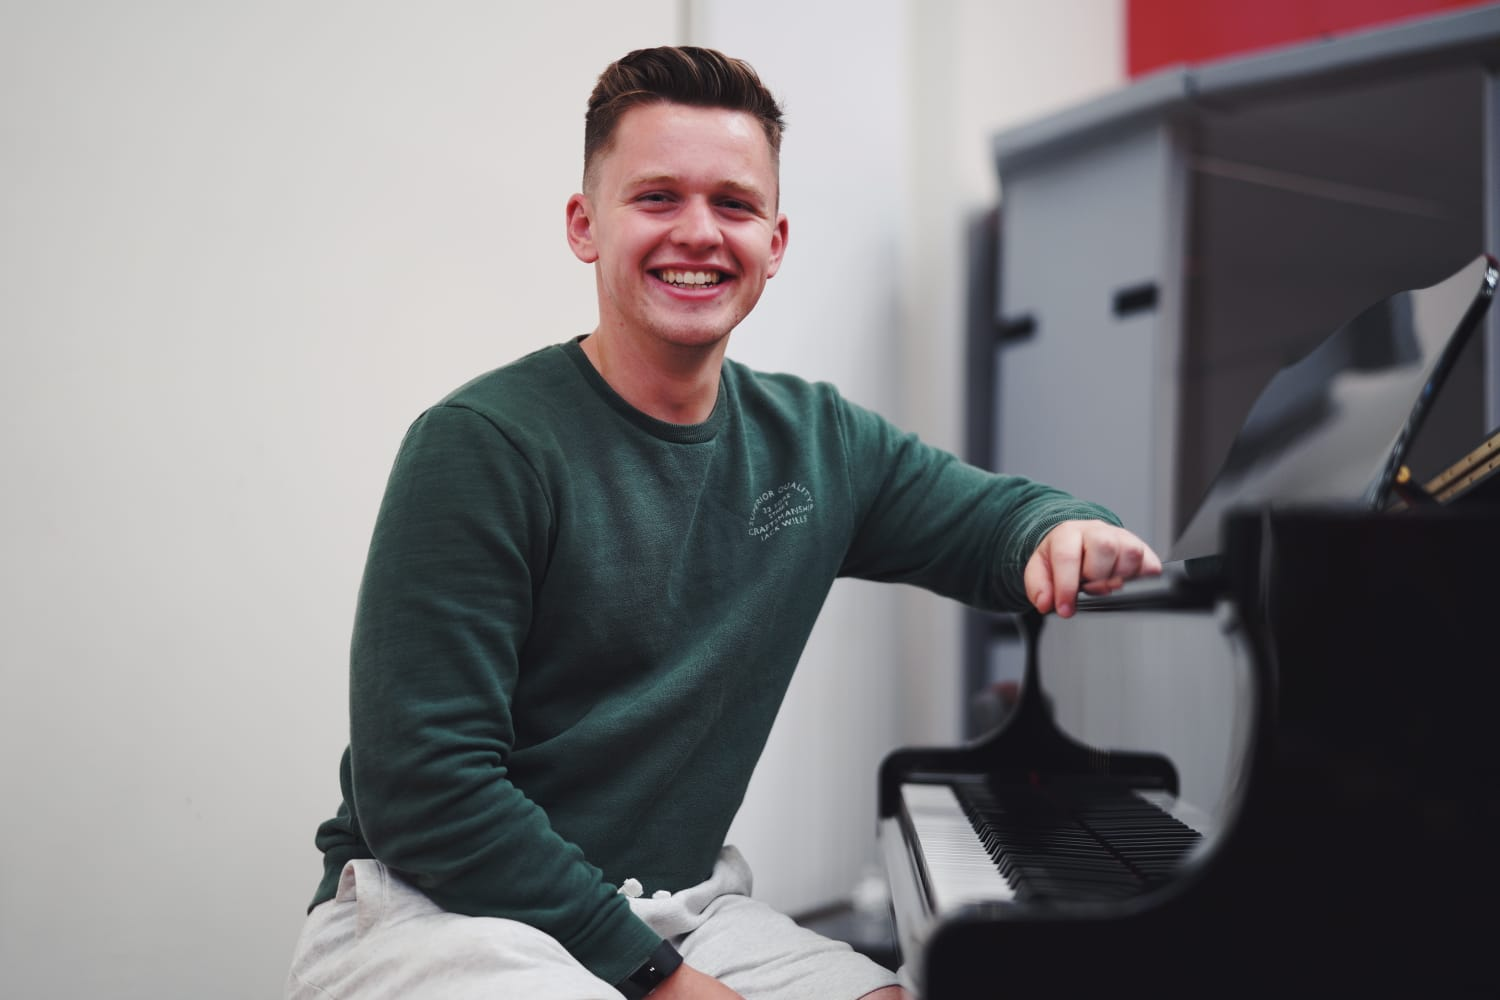 - Matthew Reid joined us as a Youth & Community worker in August 2018 having graduated from Belfast Bible College and completed an Internship with Ballymena Baptist. Aside from being involved with the youth and schools of the area, Matthew is a big Sports fan, rivaling Pastor Paul with his love of Manchester United